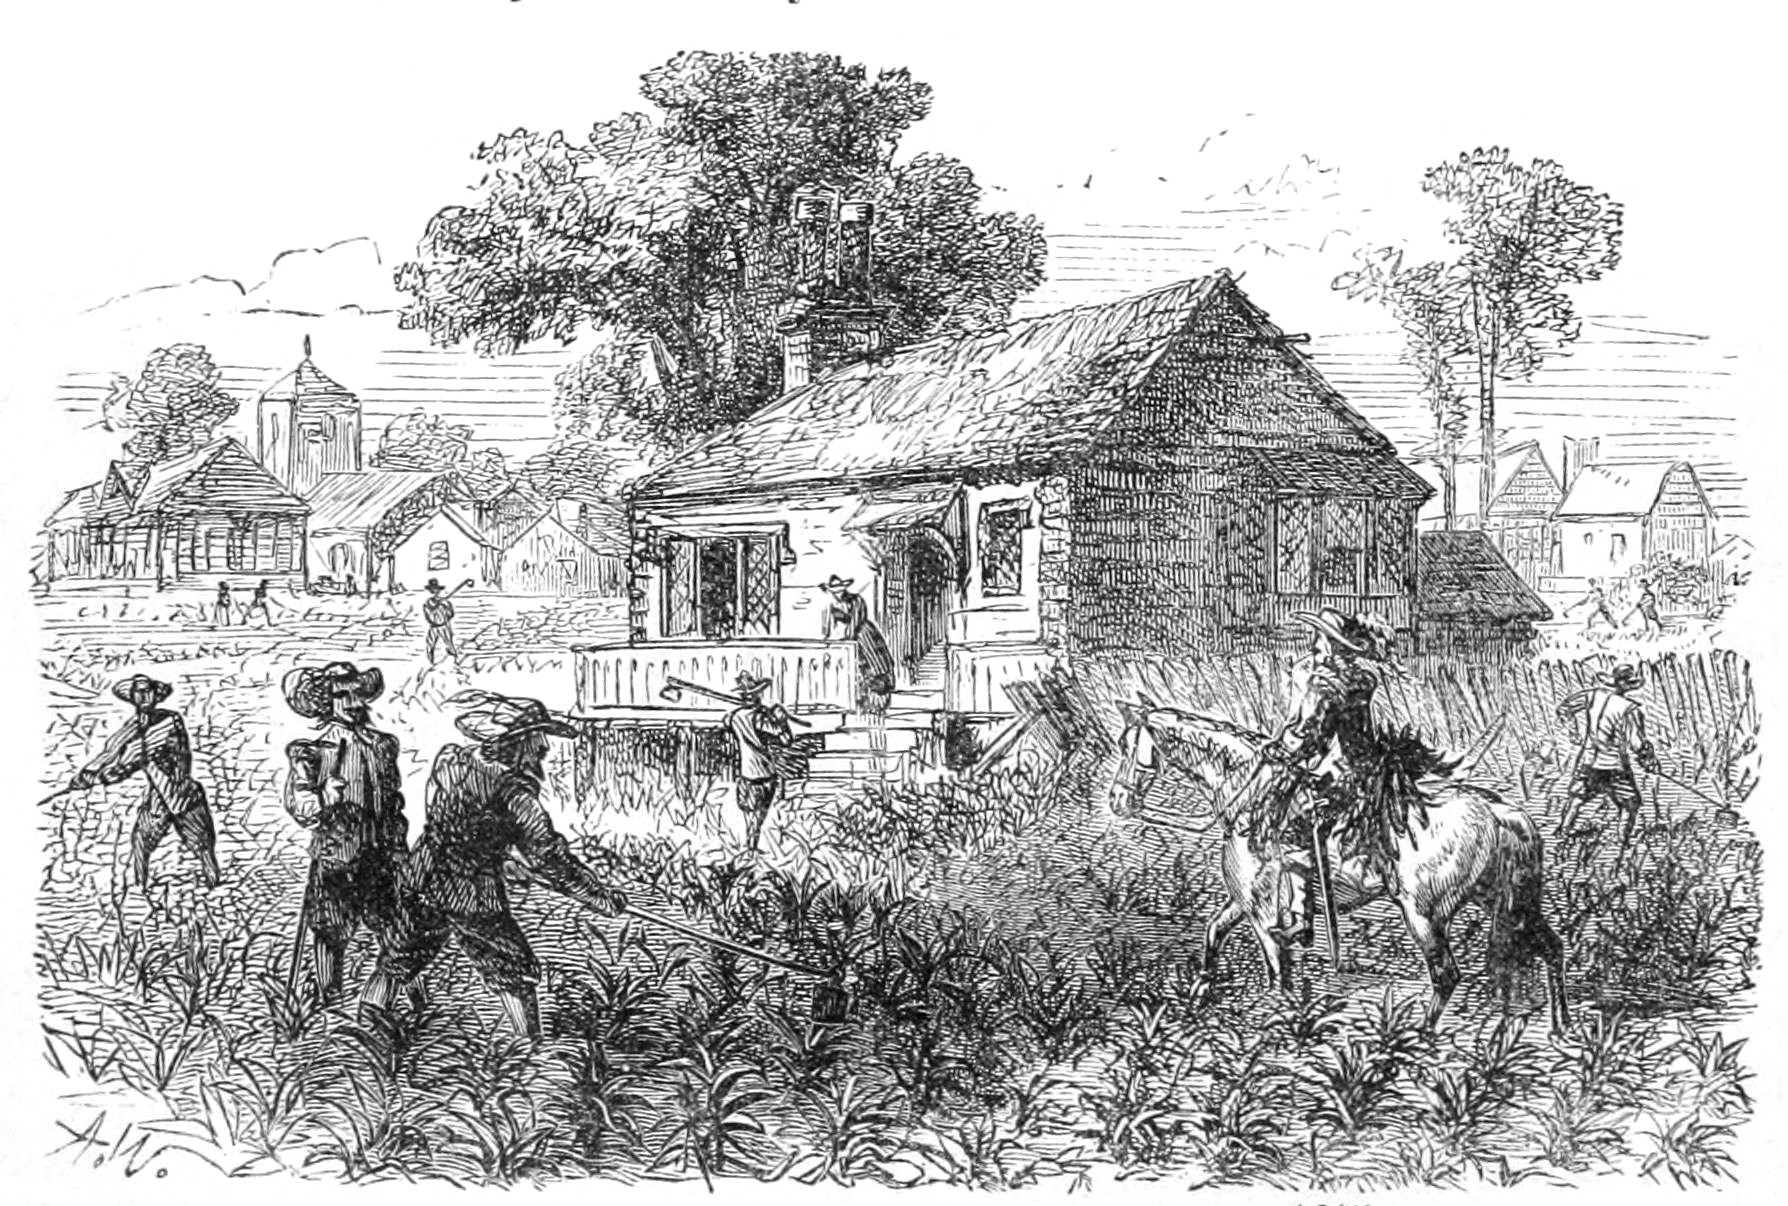 File:Cultivation of tobacco at Jamestown 1615.jpg